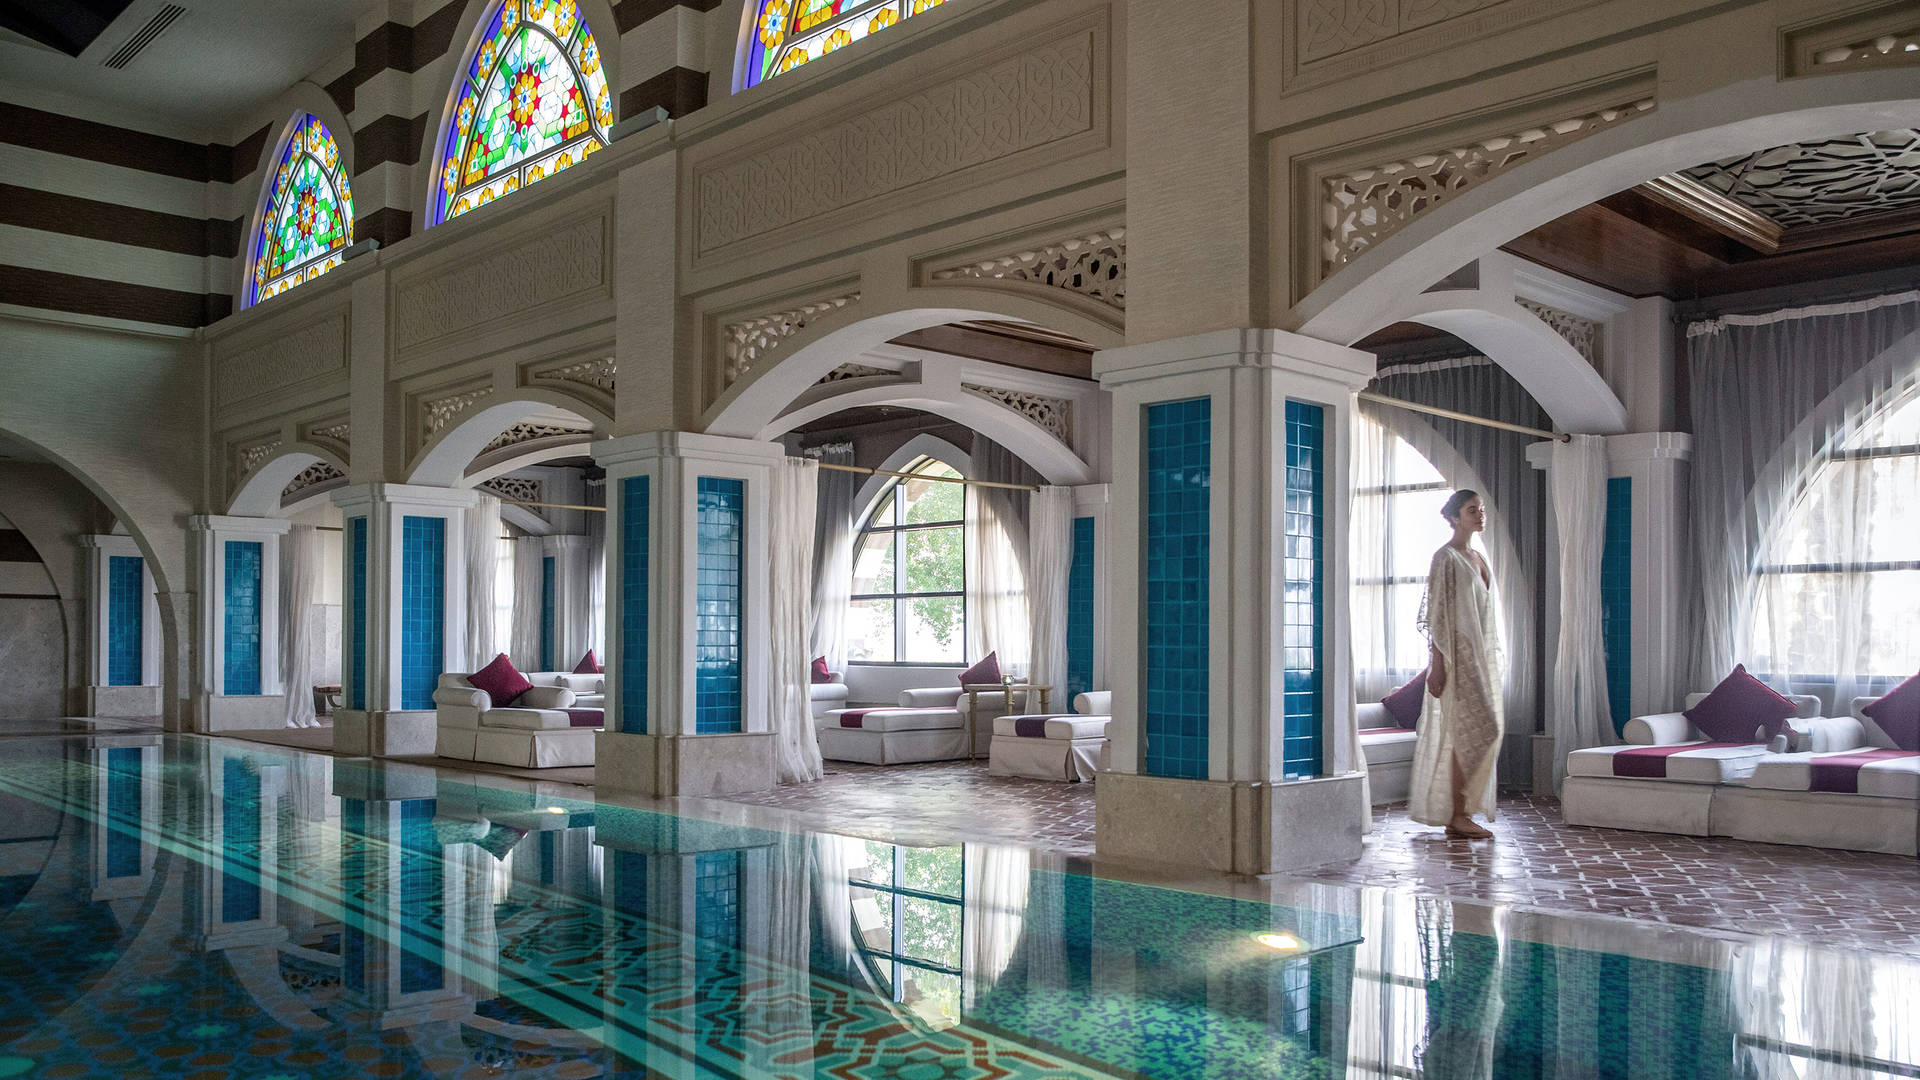 Talise Ottoman Spa interior